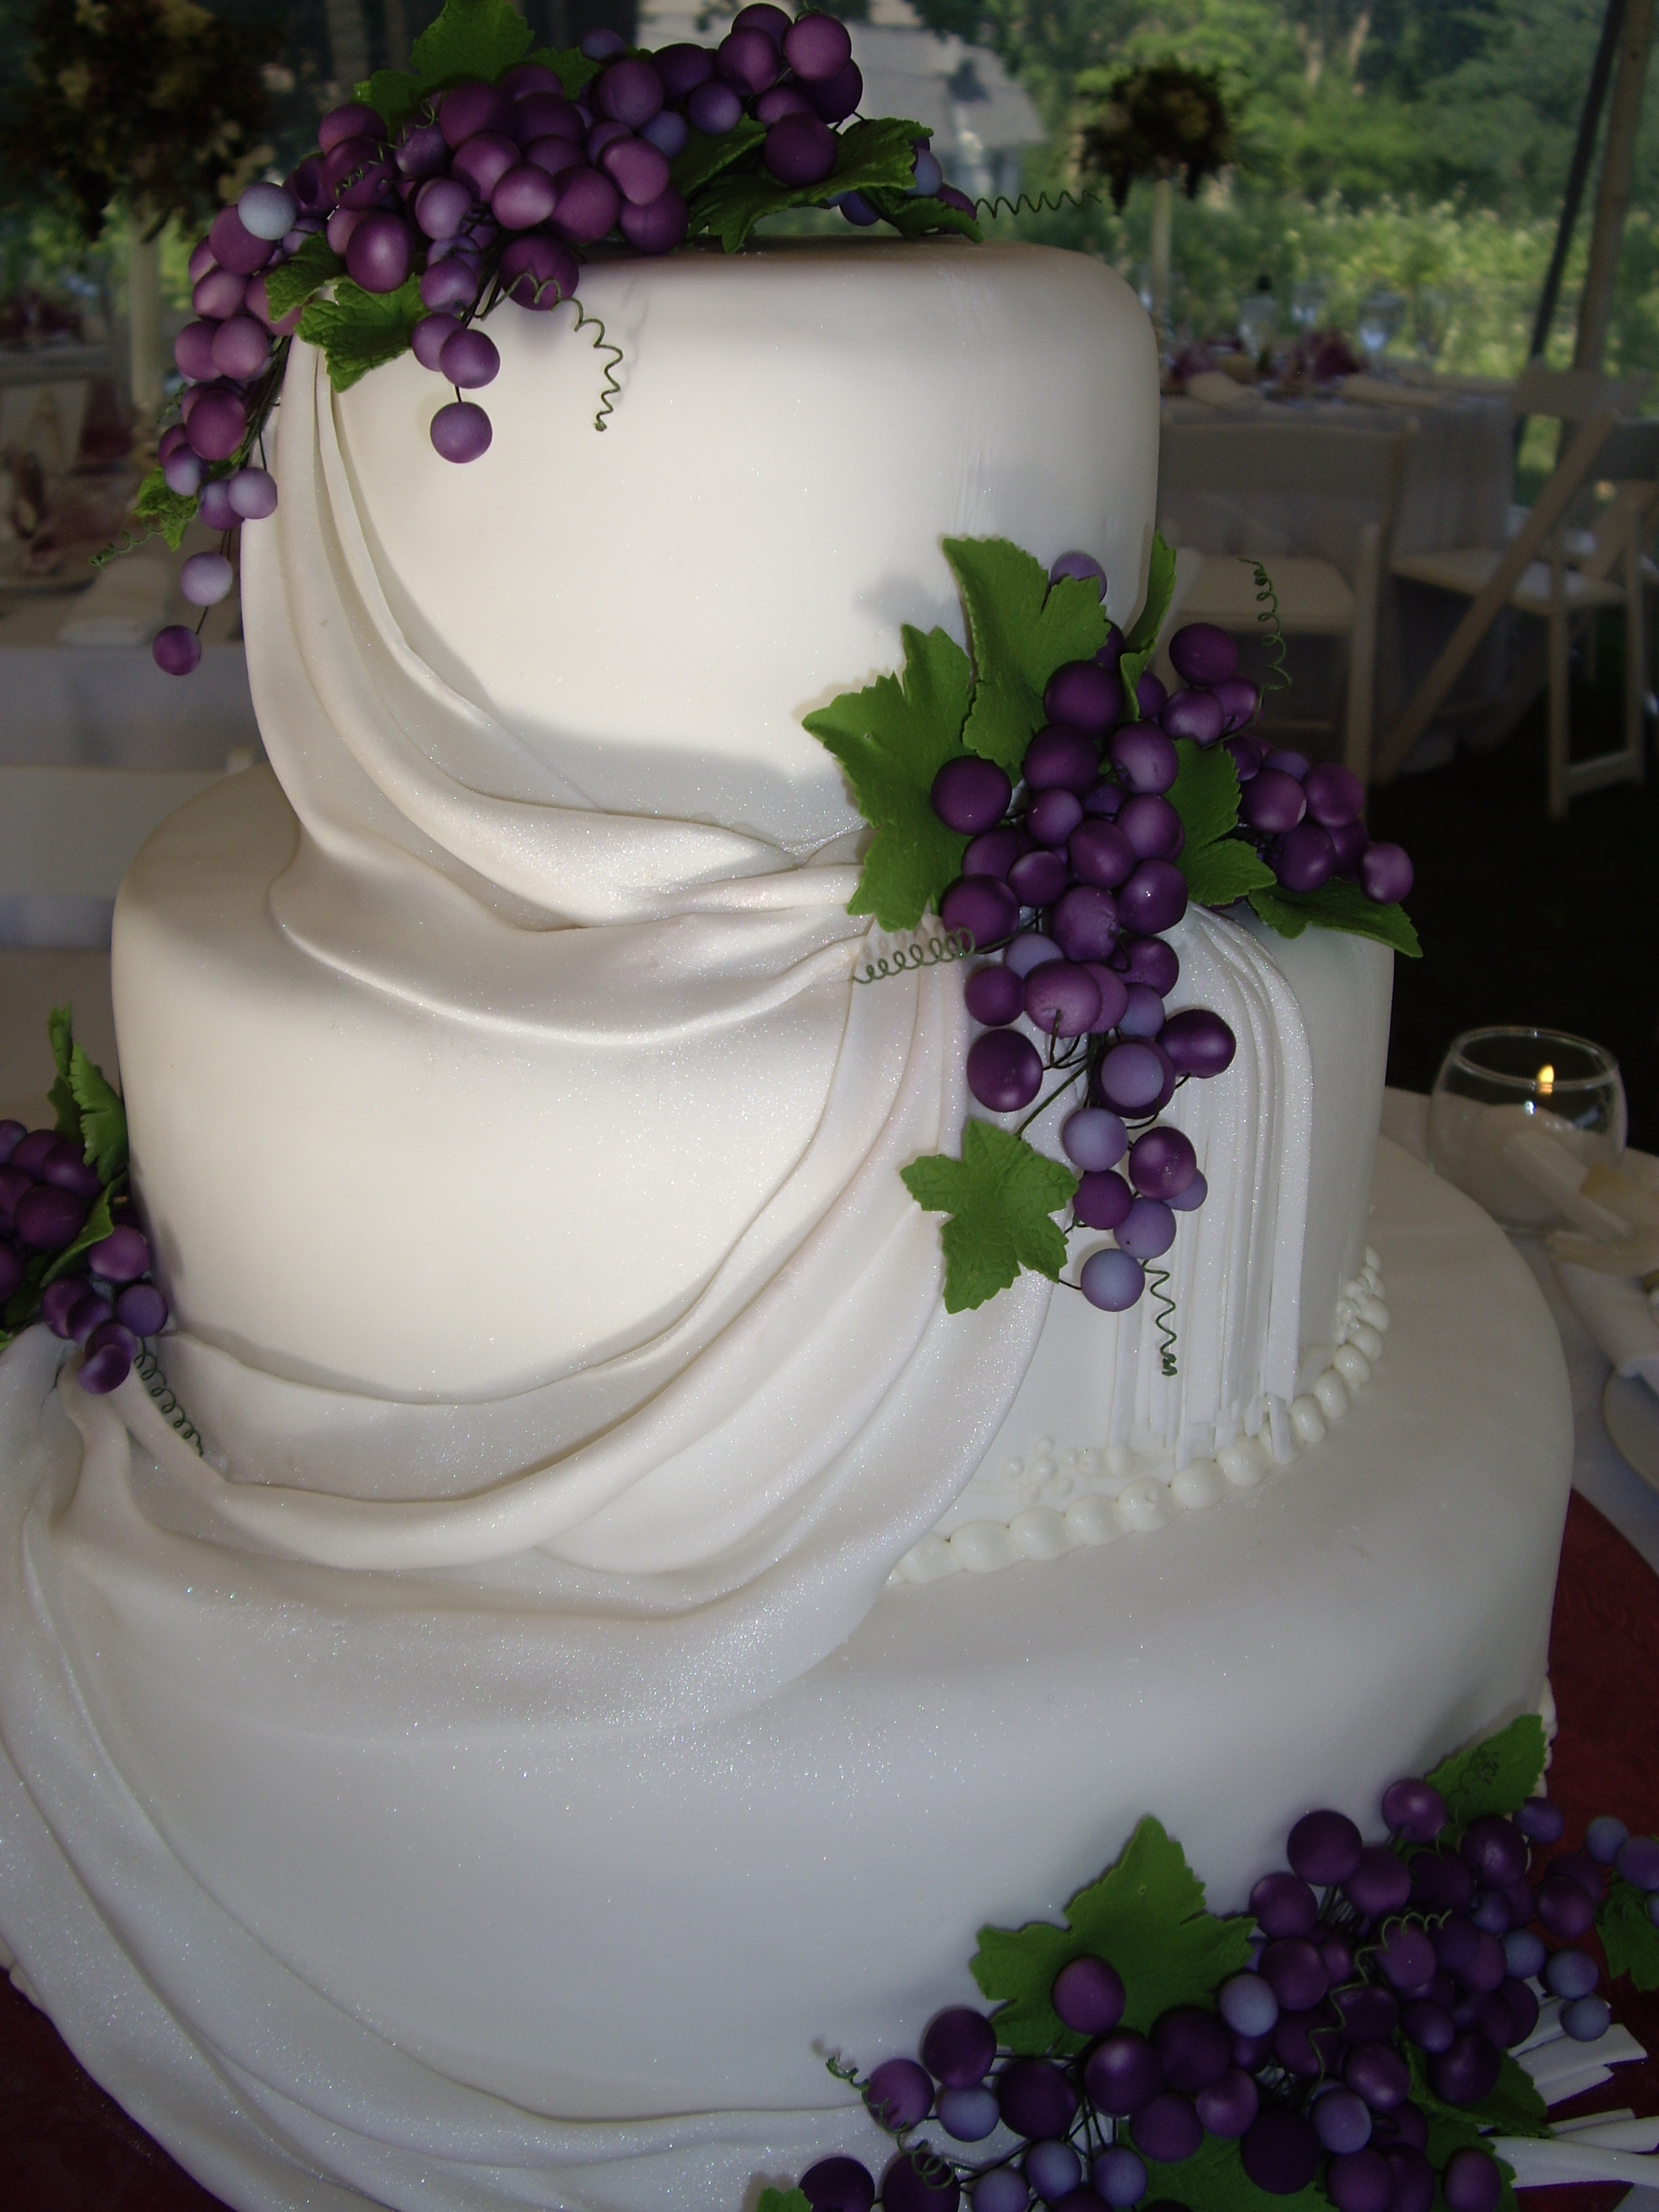 Wedding Cakes Photo Gallery  The Cake Gallery WEDDING CAKES Our unique style and